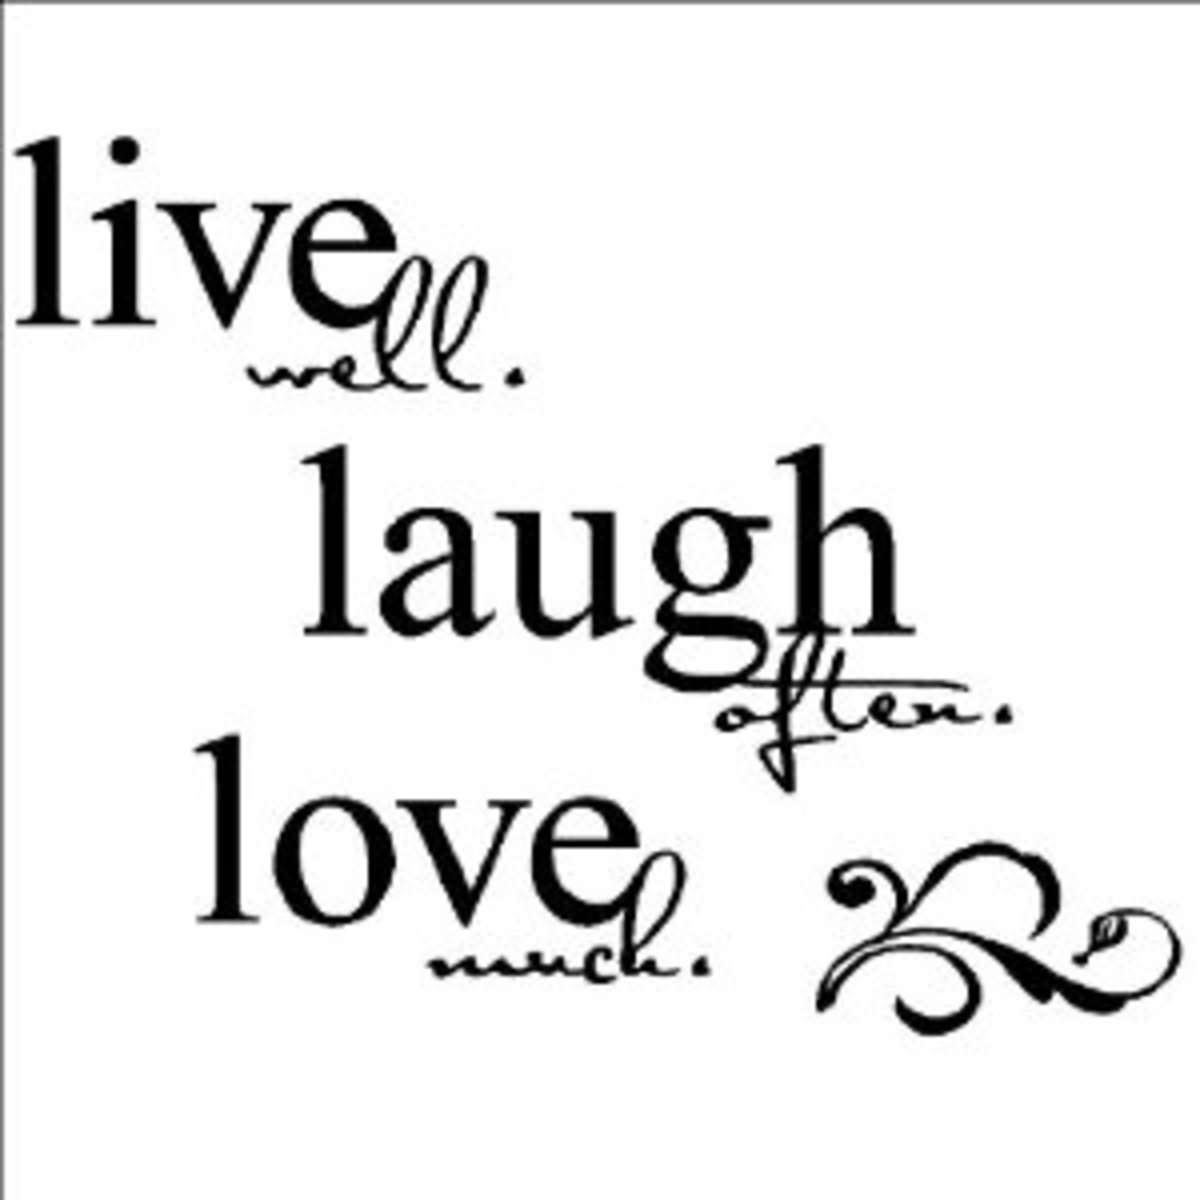 Live Laugh Love Wall Decor:  From Wall Decals to Hanging Picture Frames